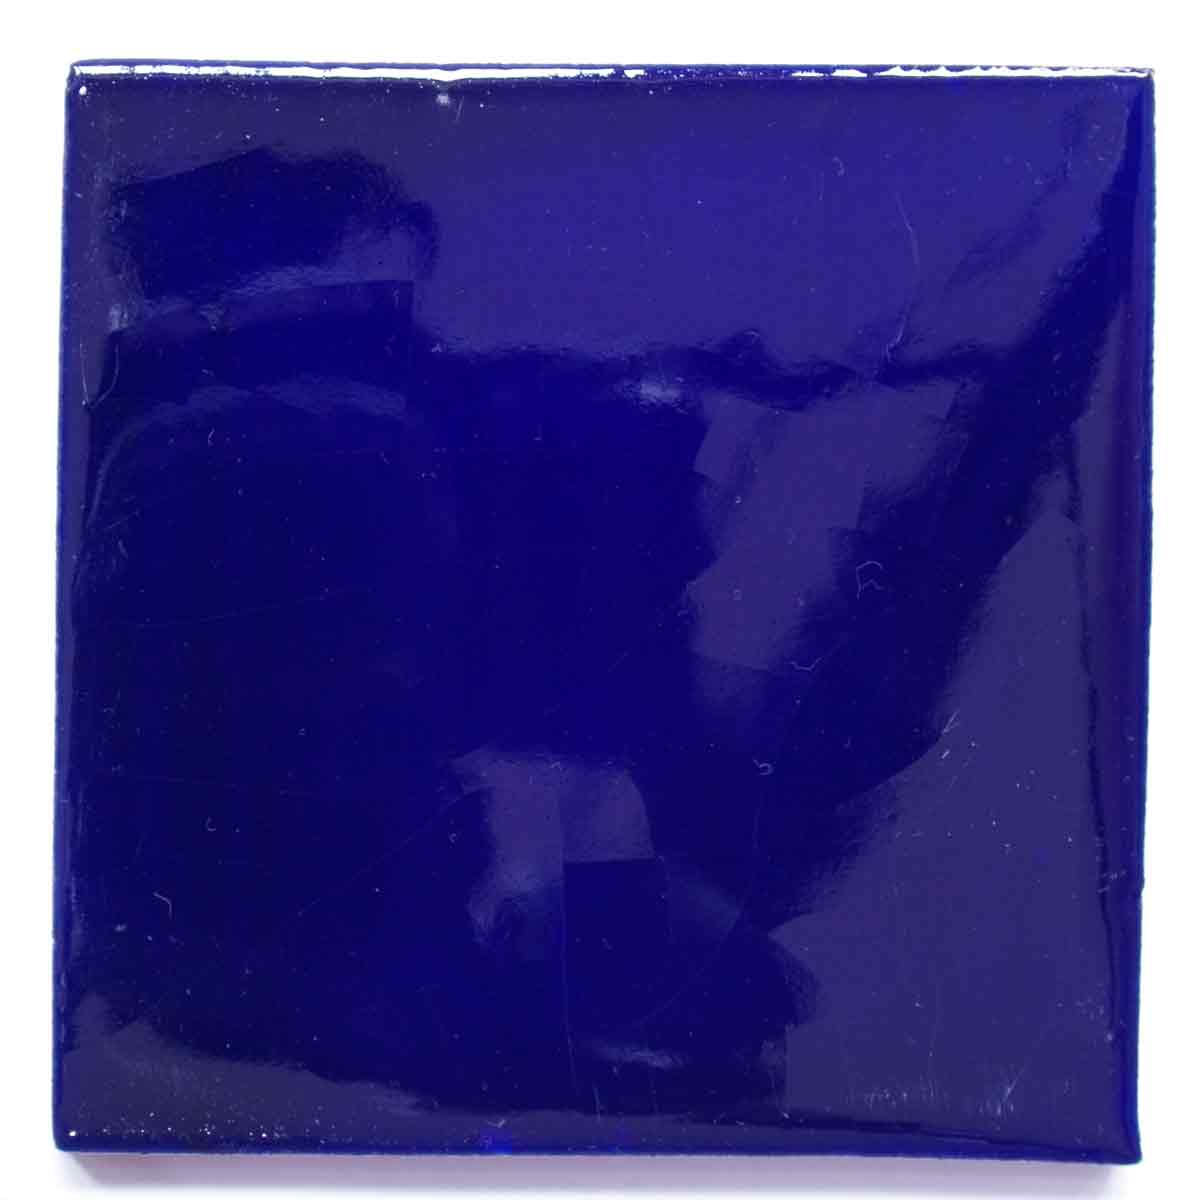 special blue hand made tiles.